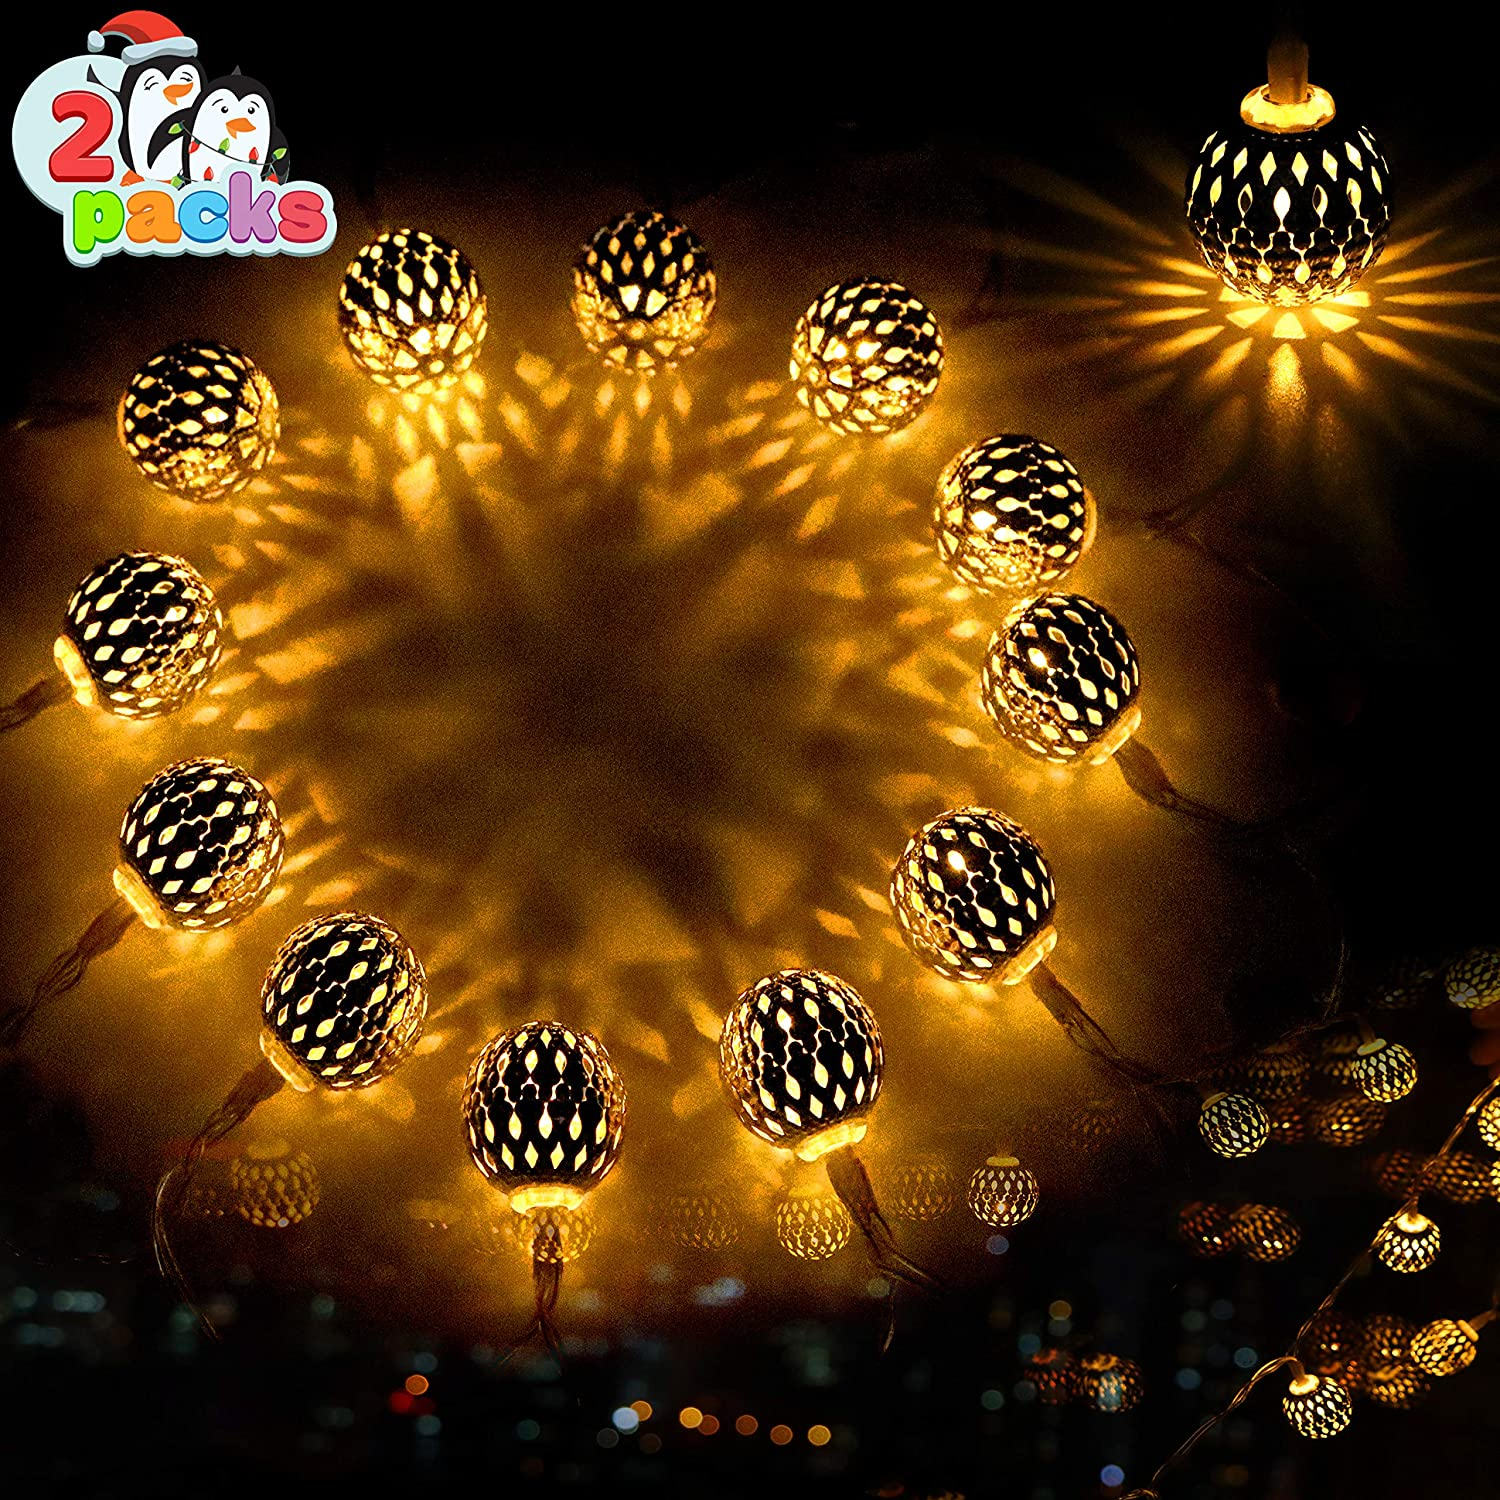 Joiedomi 2 Packs 13.5ft 40 LED Moroccan Globe String Fairy Lights (Warm White) Hanging Battery Operated for Christmas Home Party, Xmas Lanterns Decoration, Diwali Lights Décor